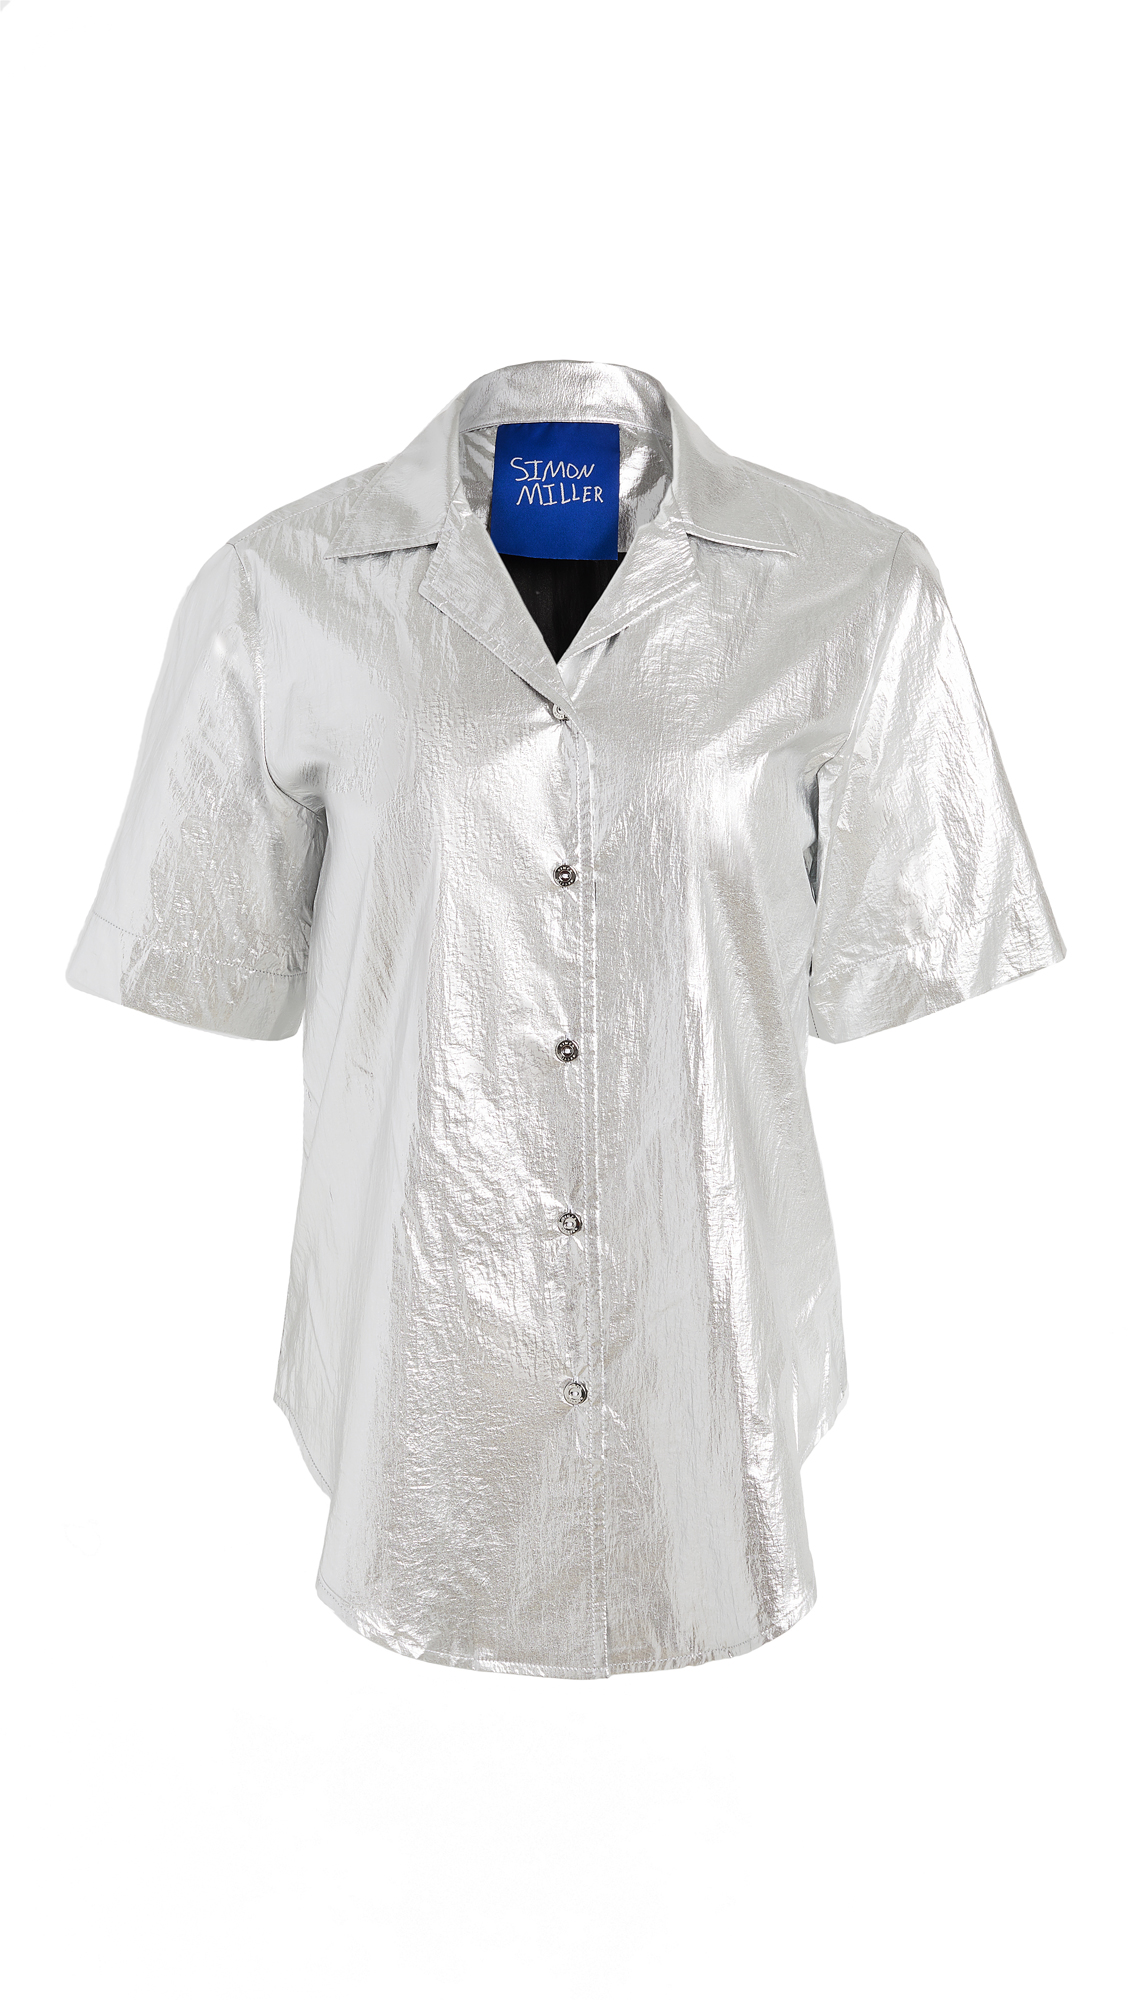 Simon Miller Dade Short Sleeve Button Down – 50% Off Sale